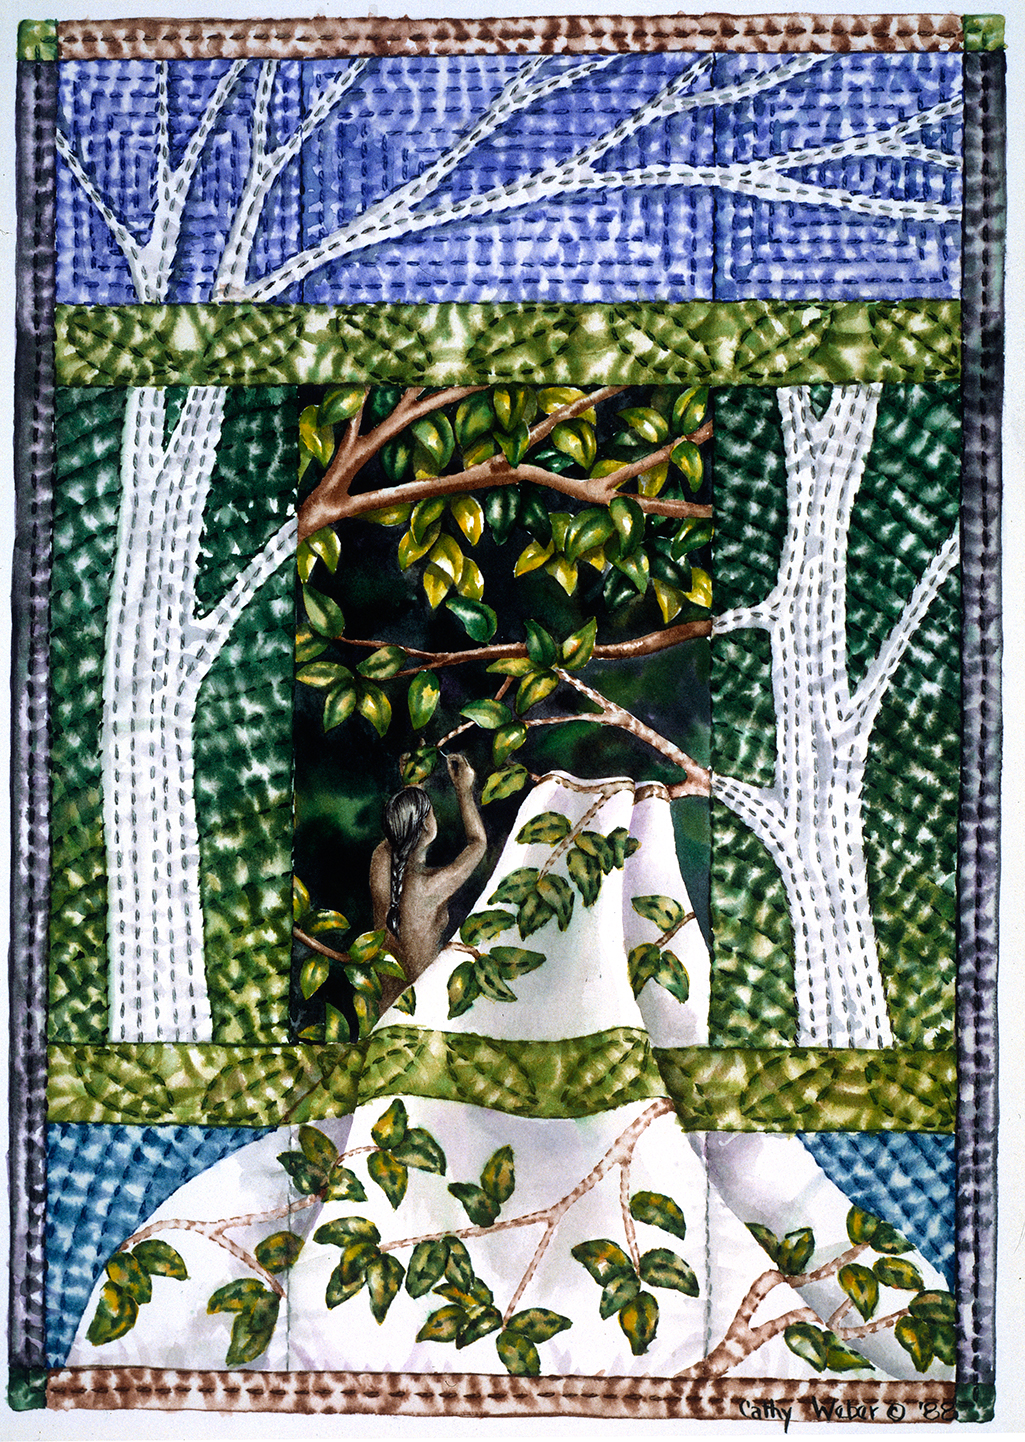 cathy weber - art - holy card - holycard - quilt - watercolor - creation - stitcher - stitch - montana- forest - green - leaves - quilter